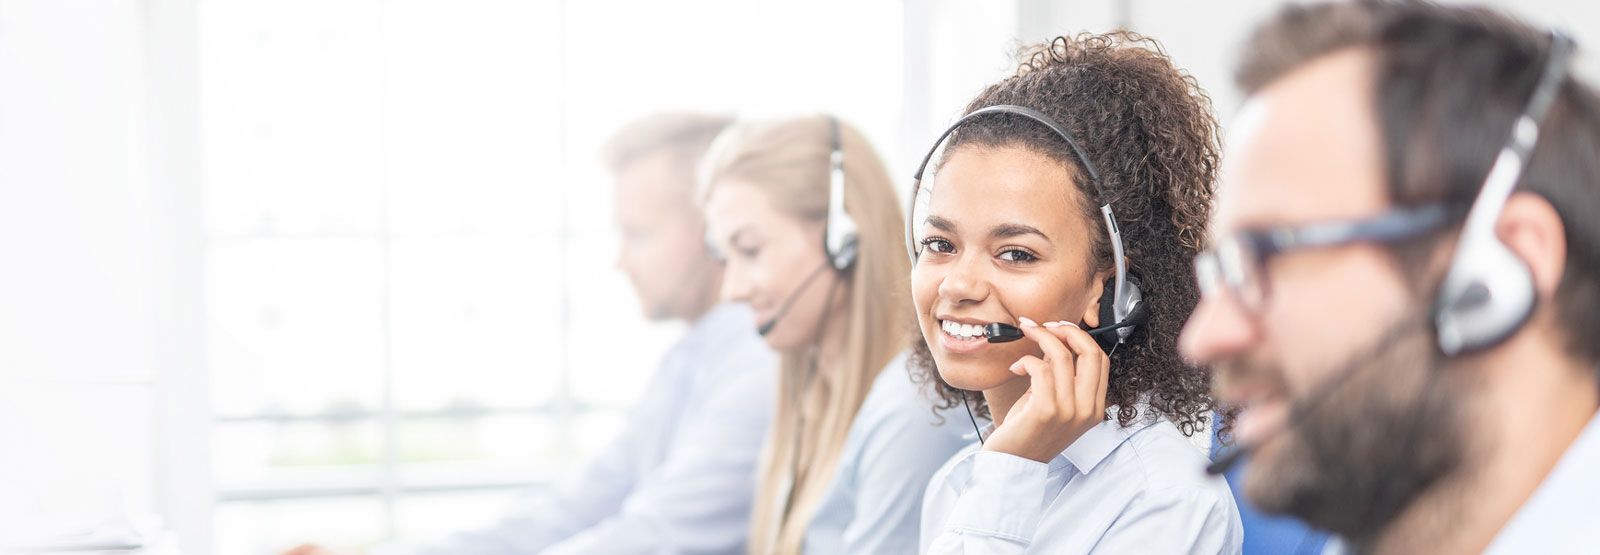 Call center worker accompanied by her team